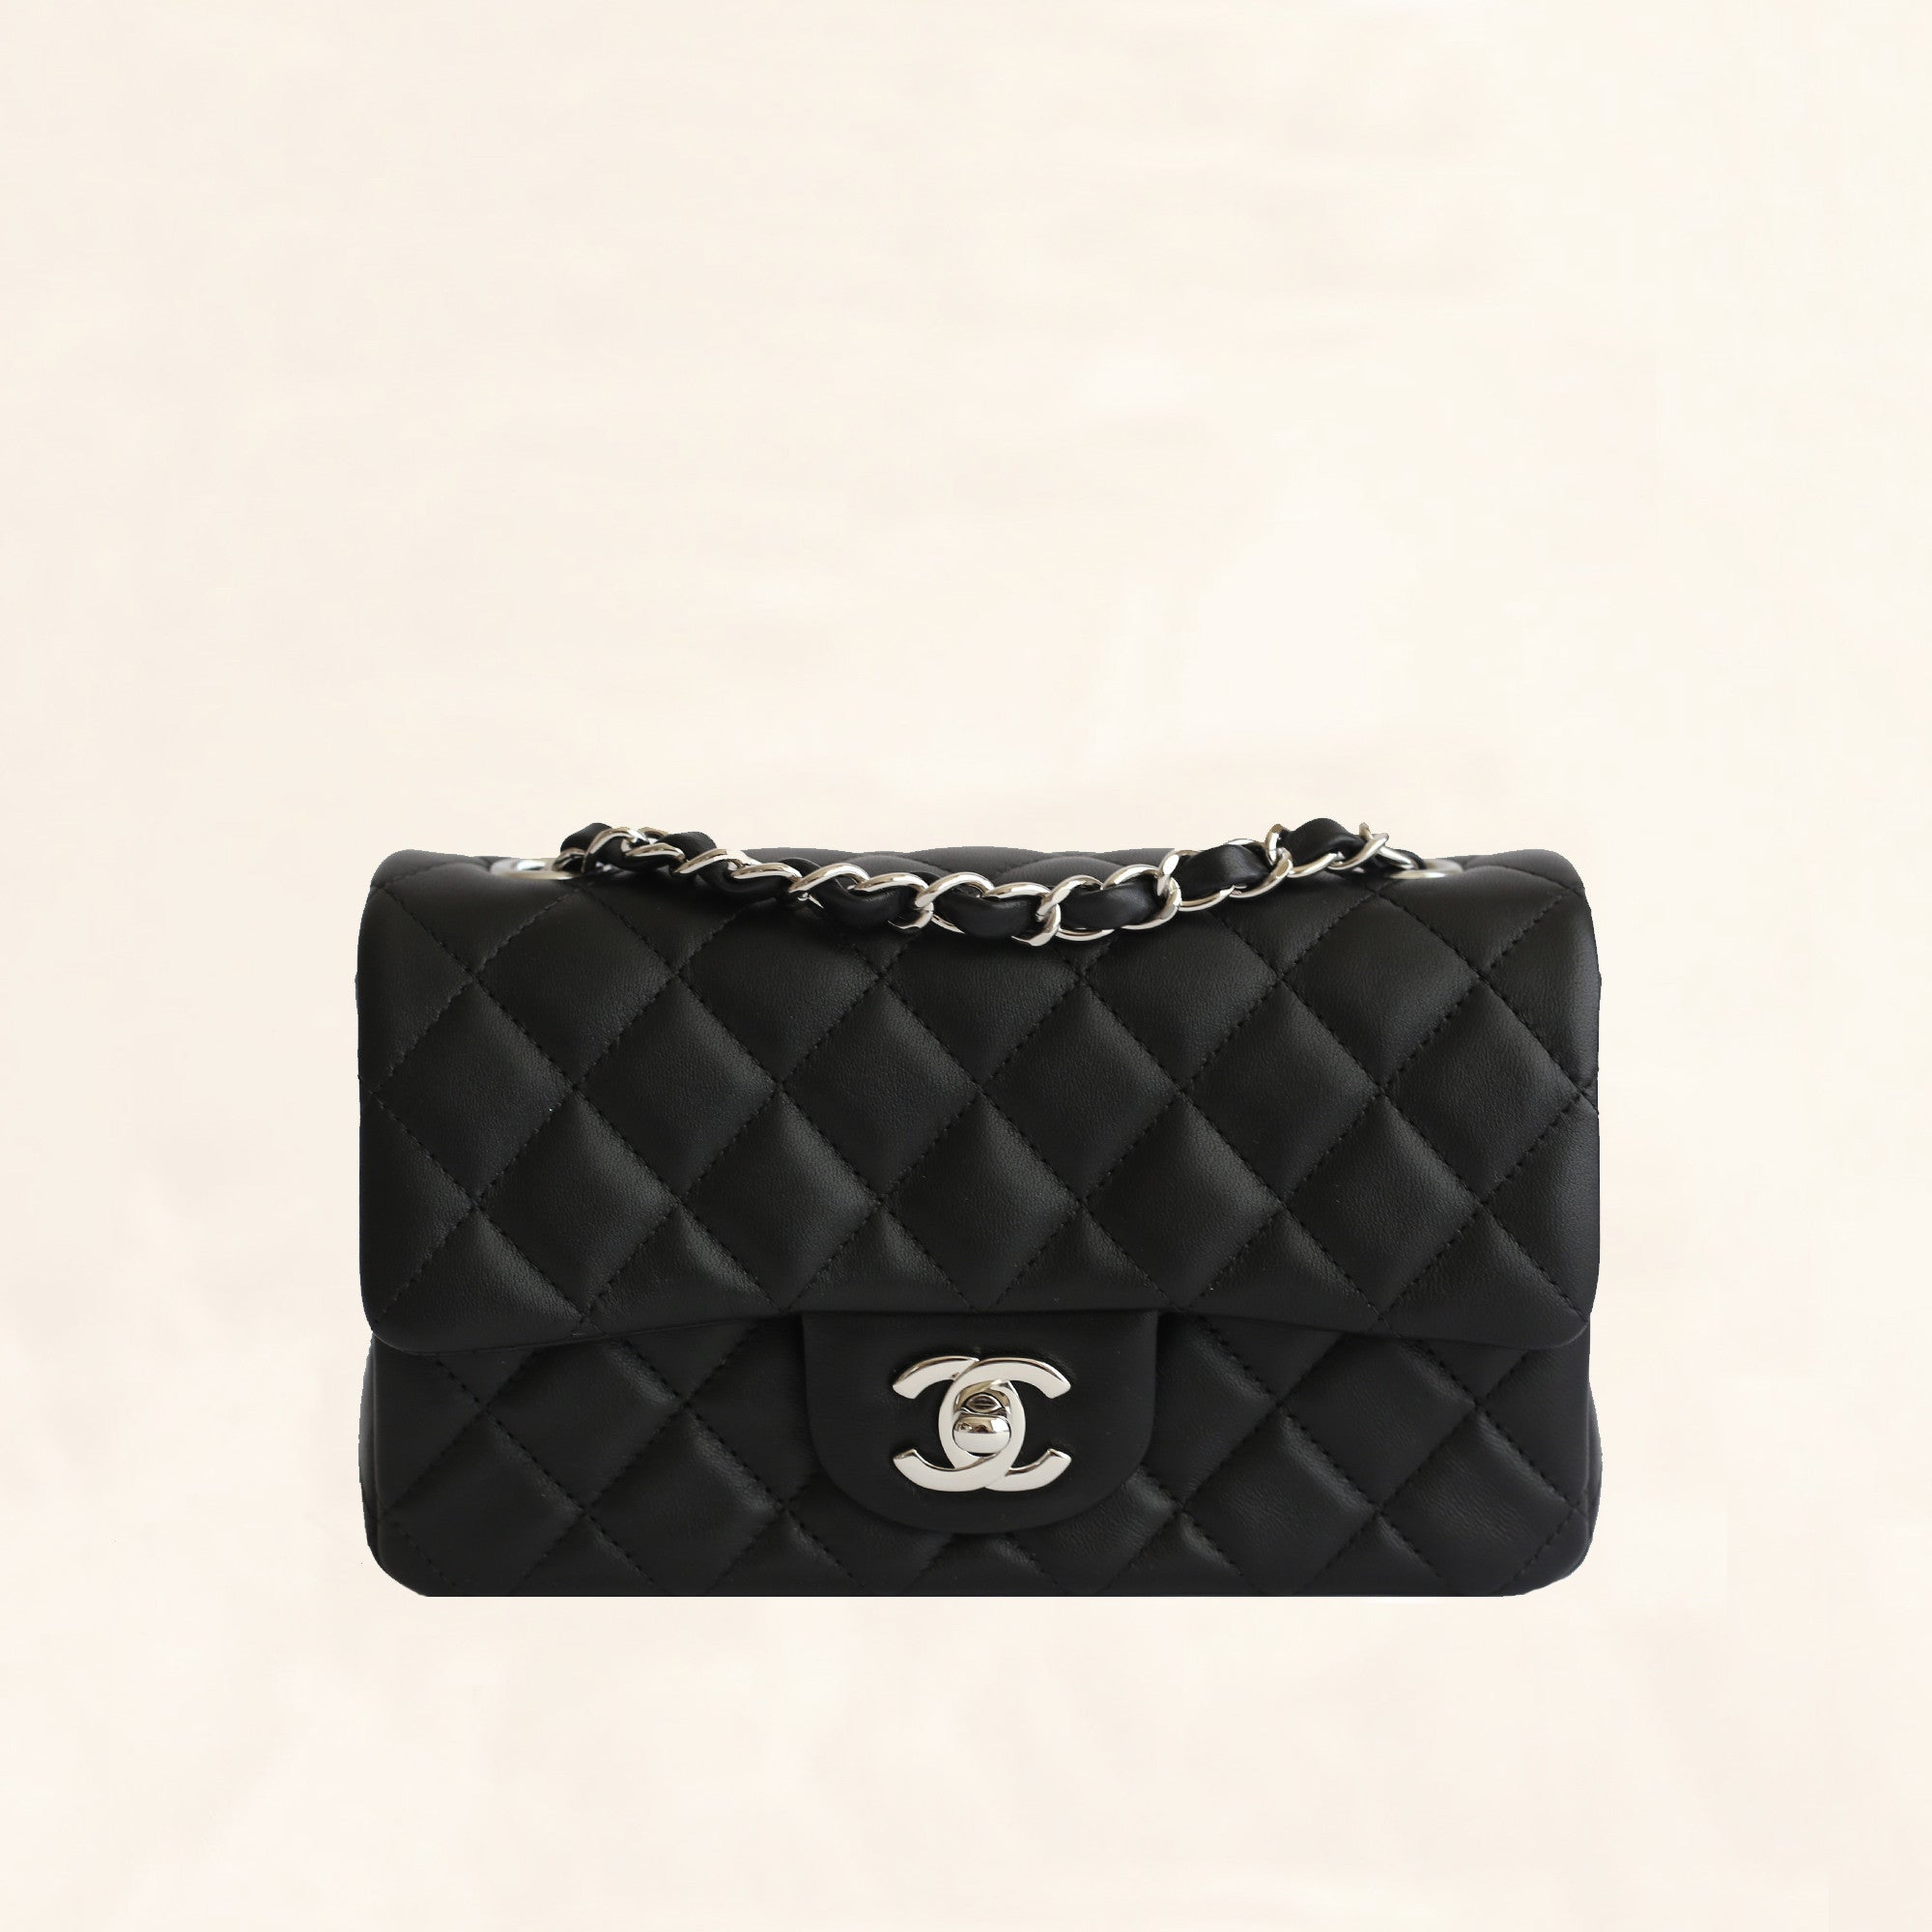 b03c90d49fae Chanel | Lambskin Classic Flap with Silver Hardware | Mini - The-Collectory